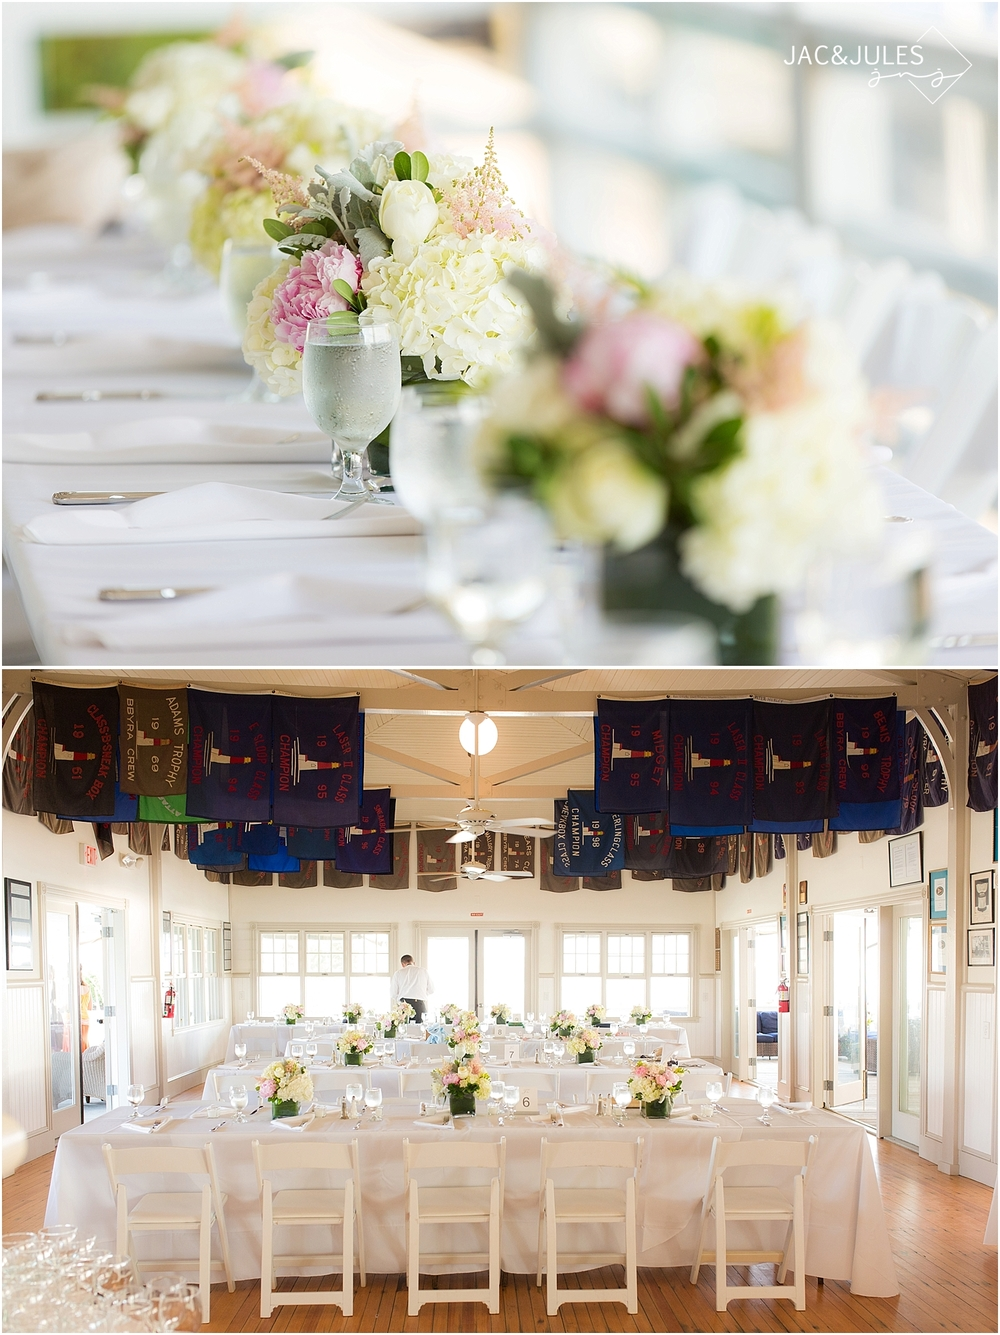 jacnjules photograph wedding reception details at mantoloking yacht club